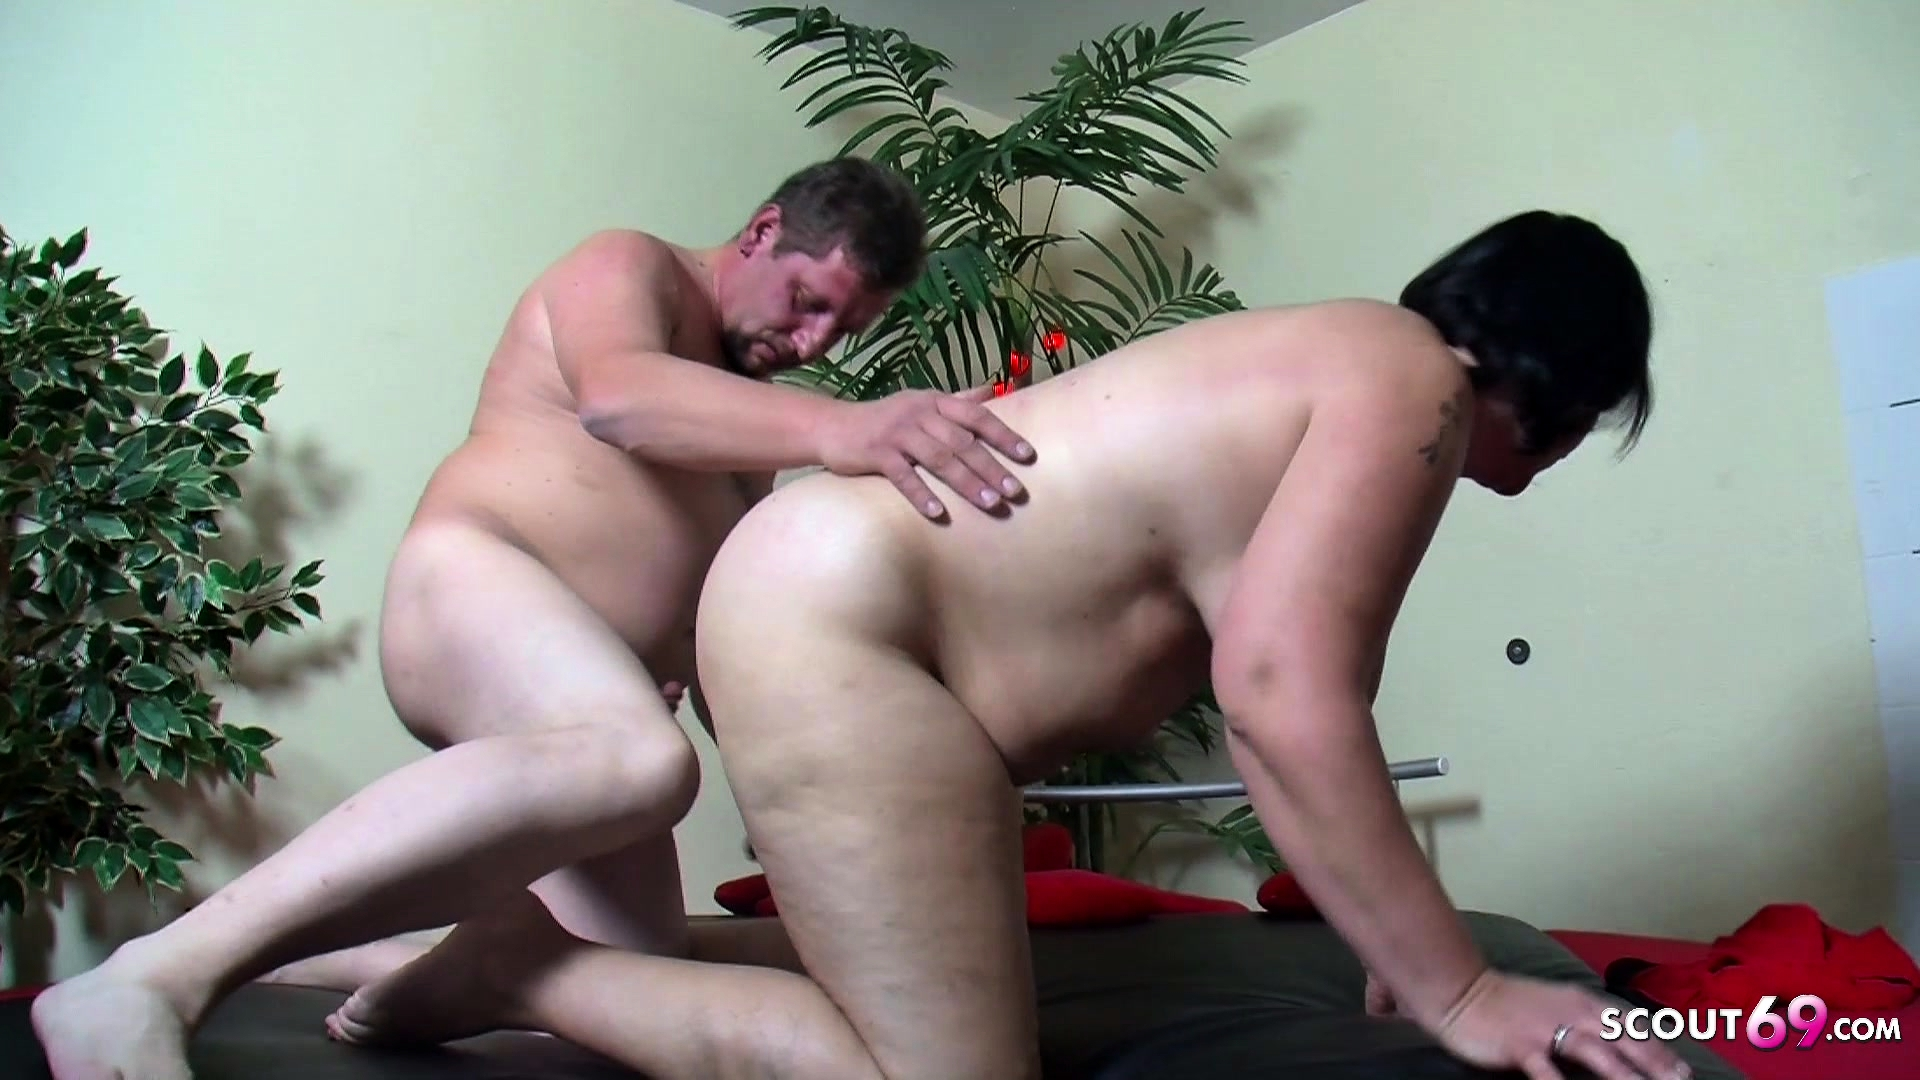 French Mature Couple Webcam